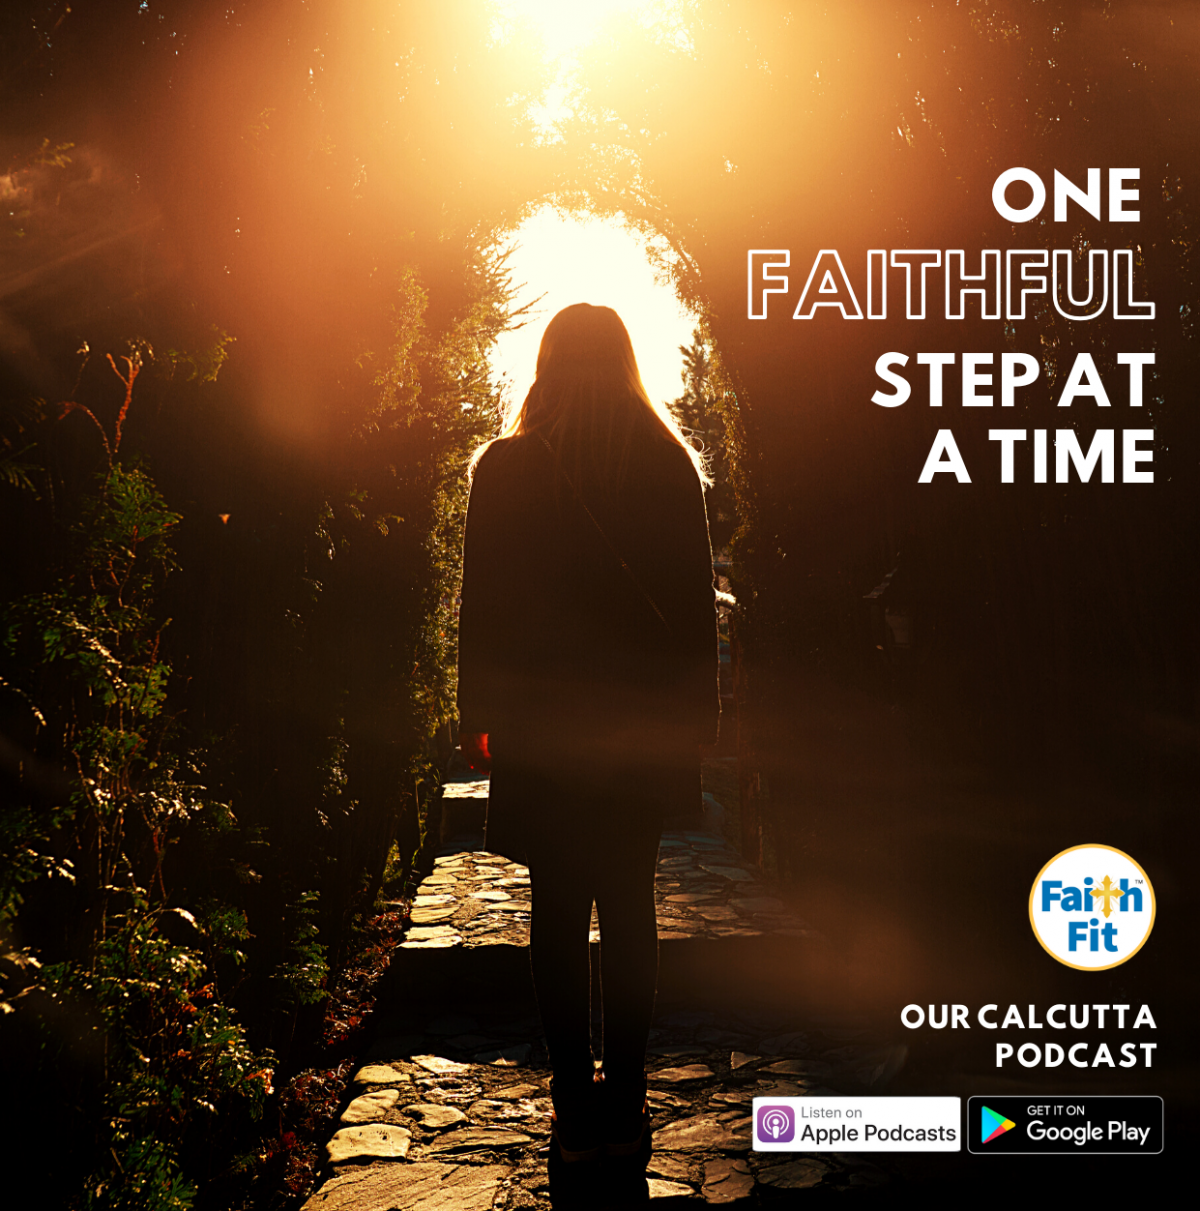 #8: One Faithful Step at a Time